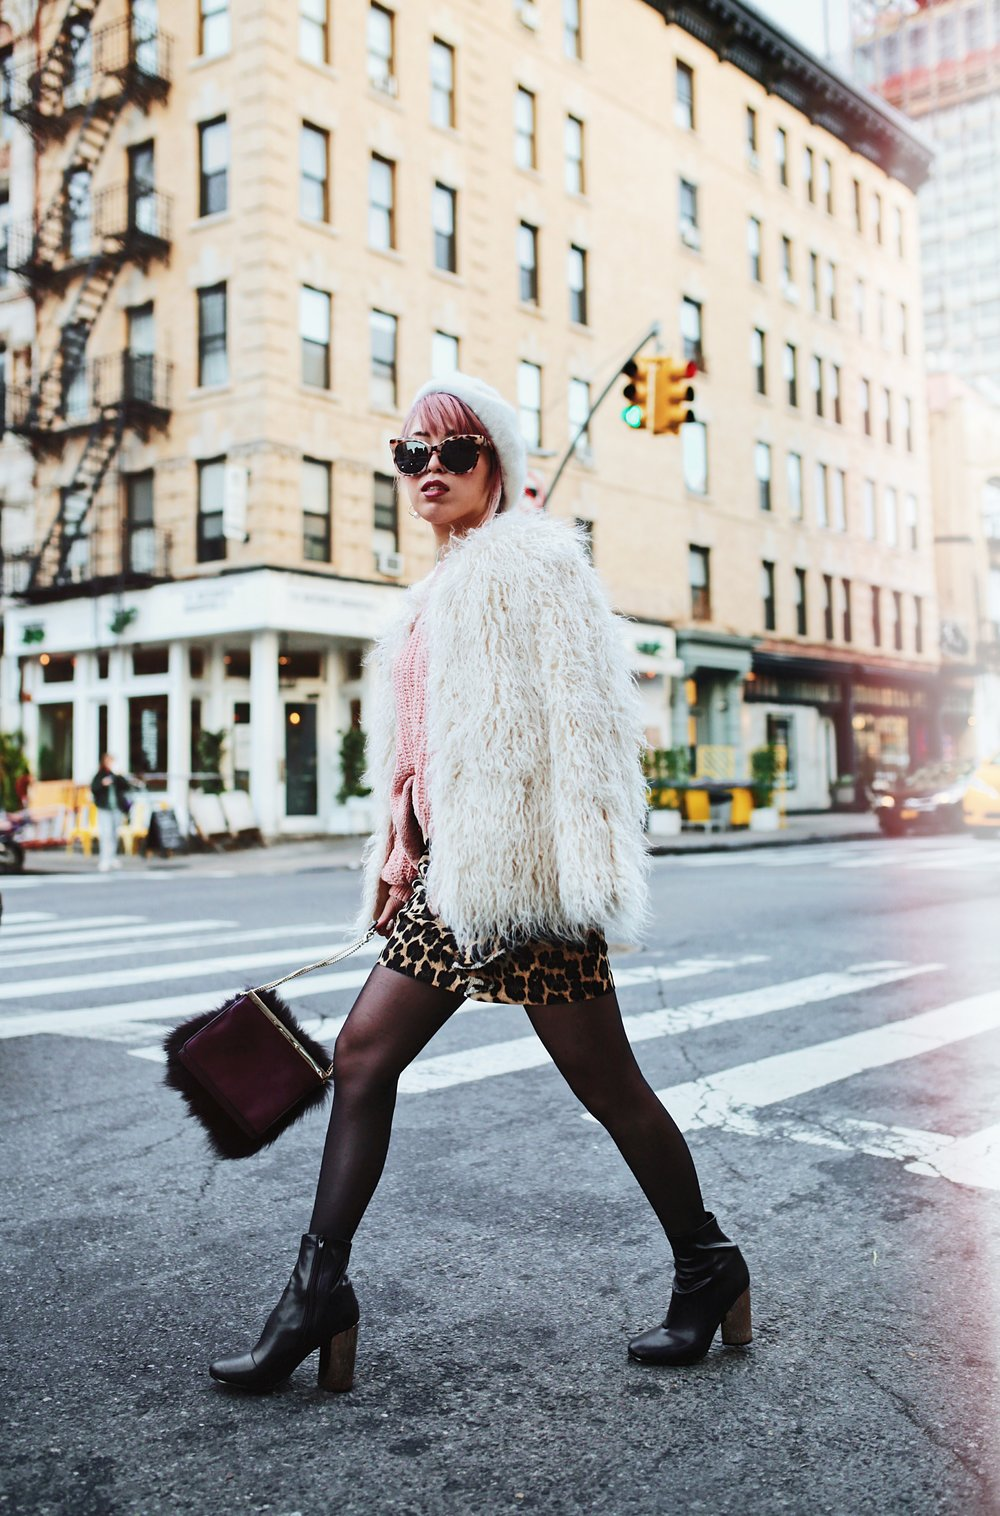 H&M Pink Sweater-Zara leopar prins mini skirt-H&M white shaggy coat-DVF fur bag-anthropologie white beret-Urban Outfitters Sunglasses-ALDO Ankle Boots-Mango Earrings-Aikas Love Closet-New York City-Pink Hair-Style Fashion Blogger-Seattle-Japanese_Petite fashion blogger 11